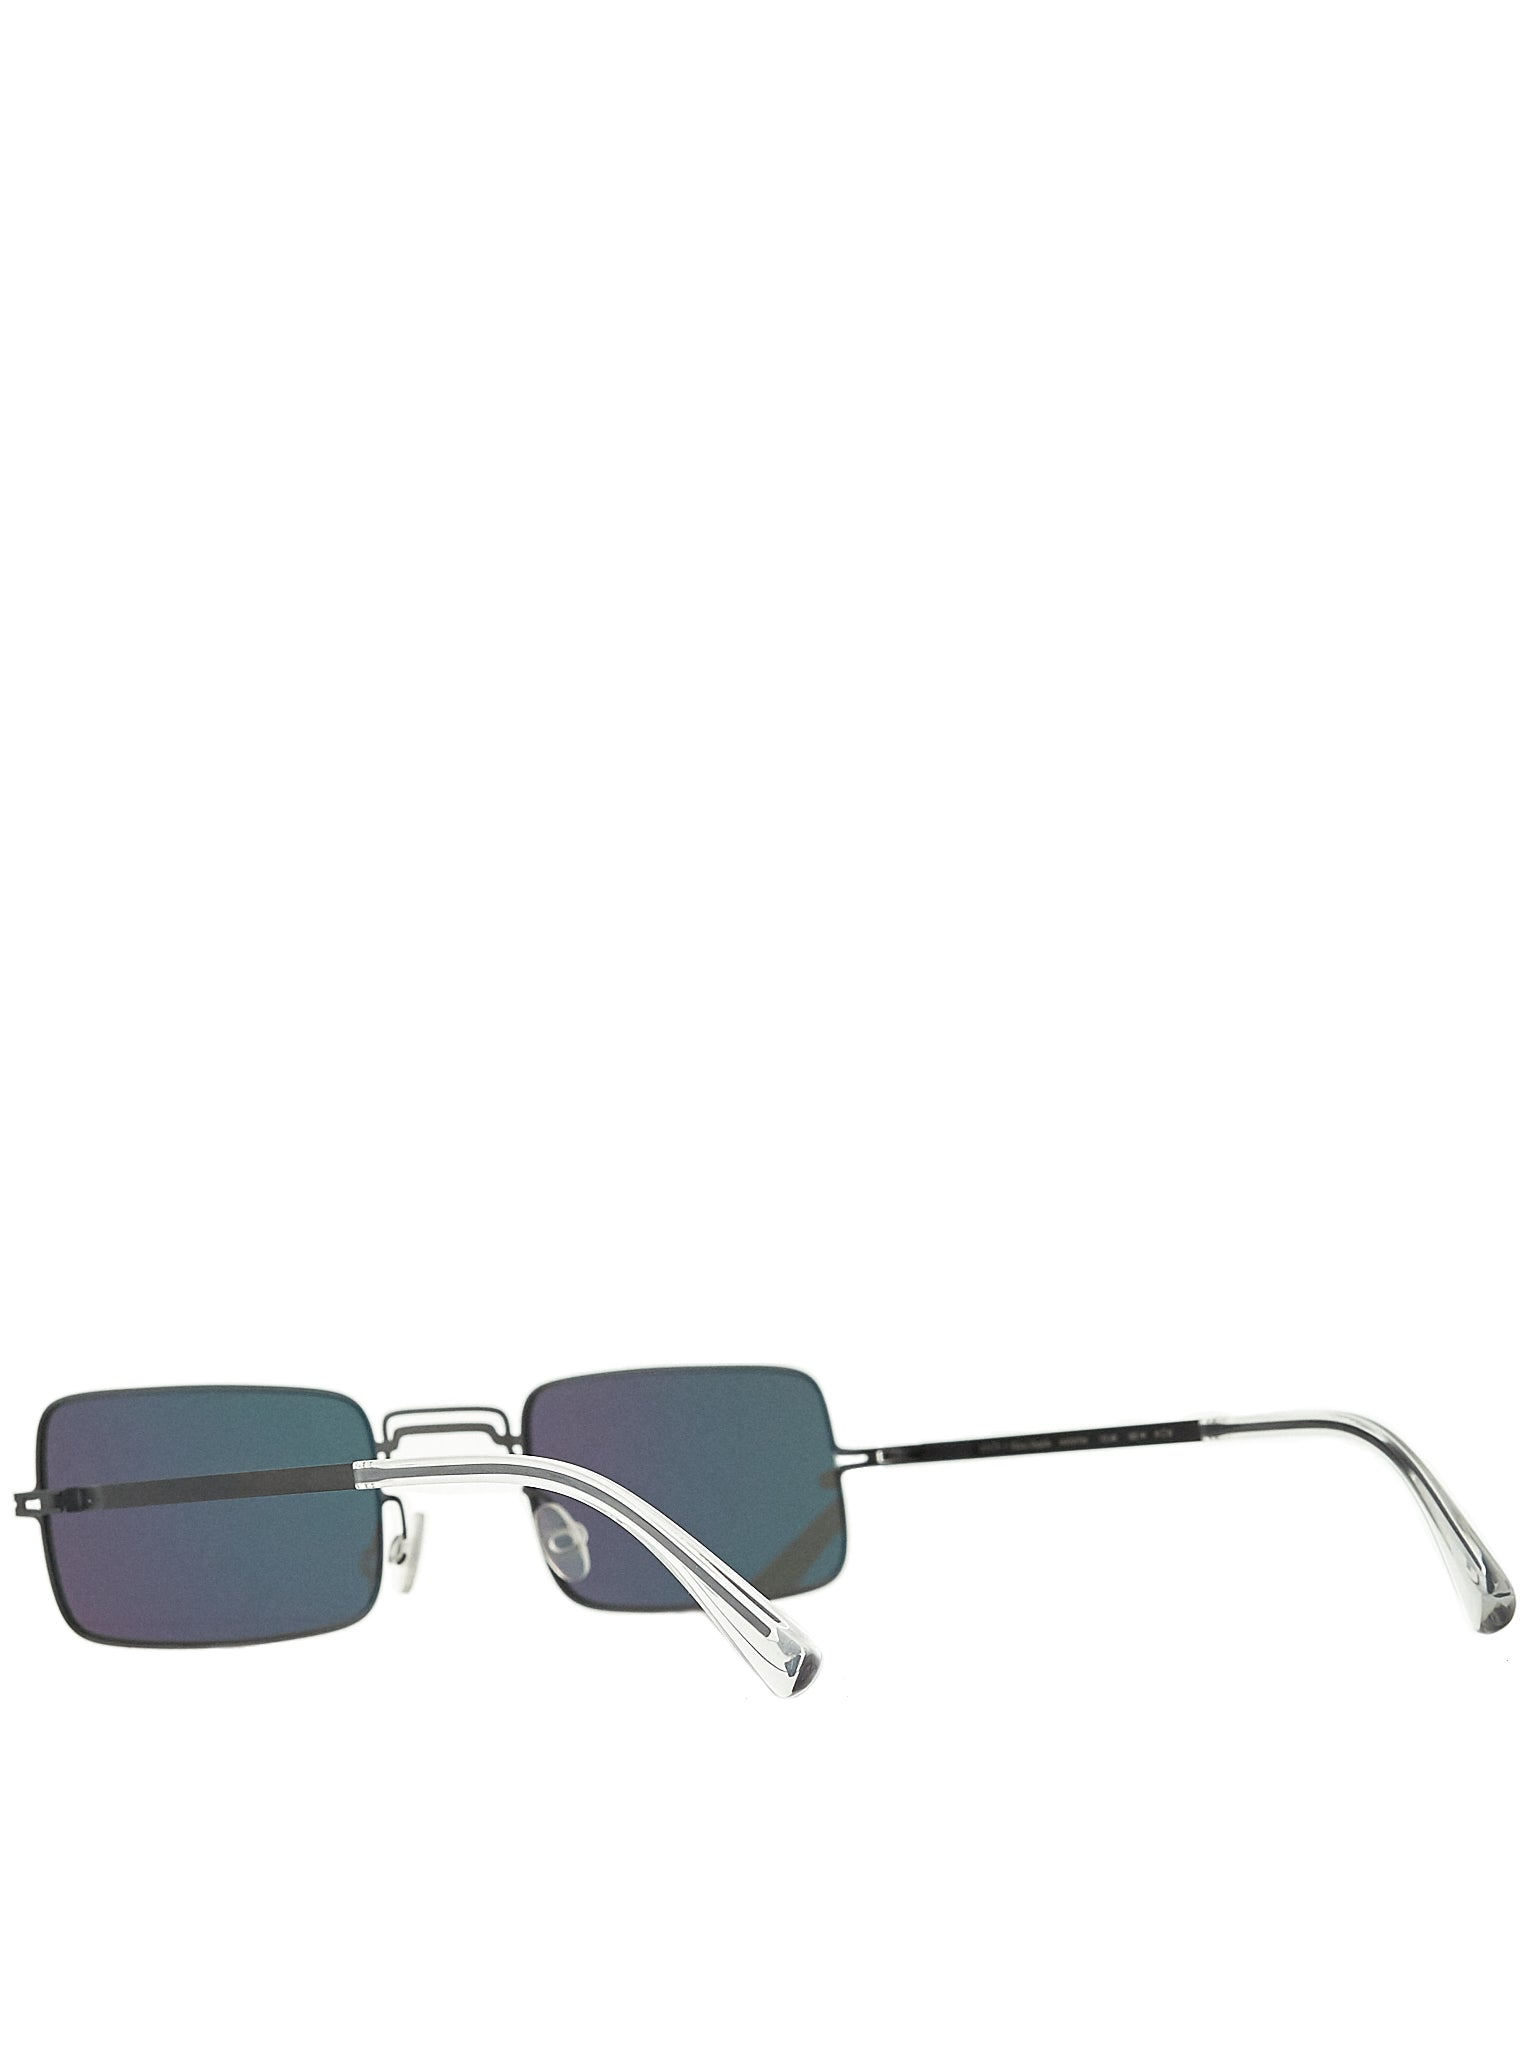 'MMCRAFT003' Square Frame Sunglasses (MMCRAFT003-BLACK-DARKGREY)